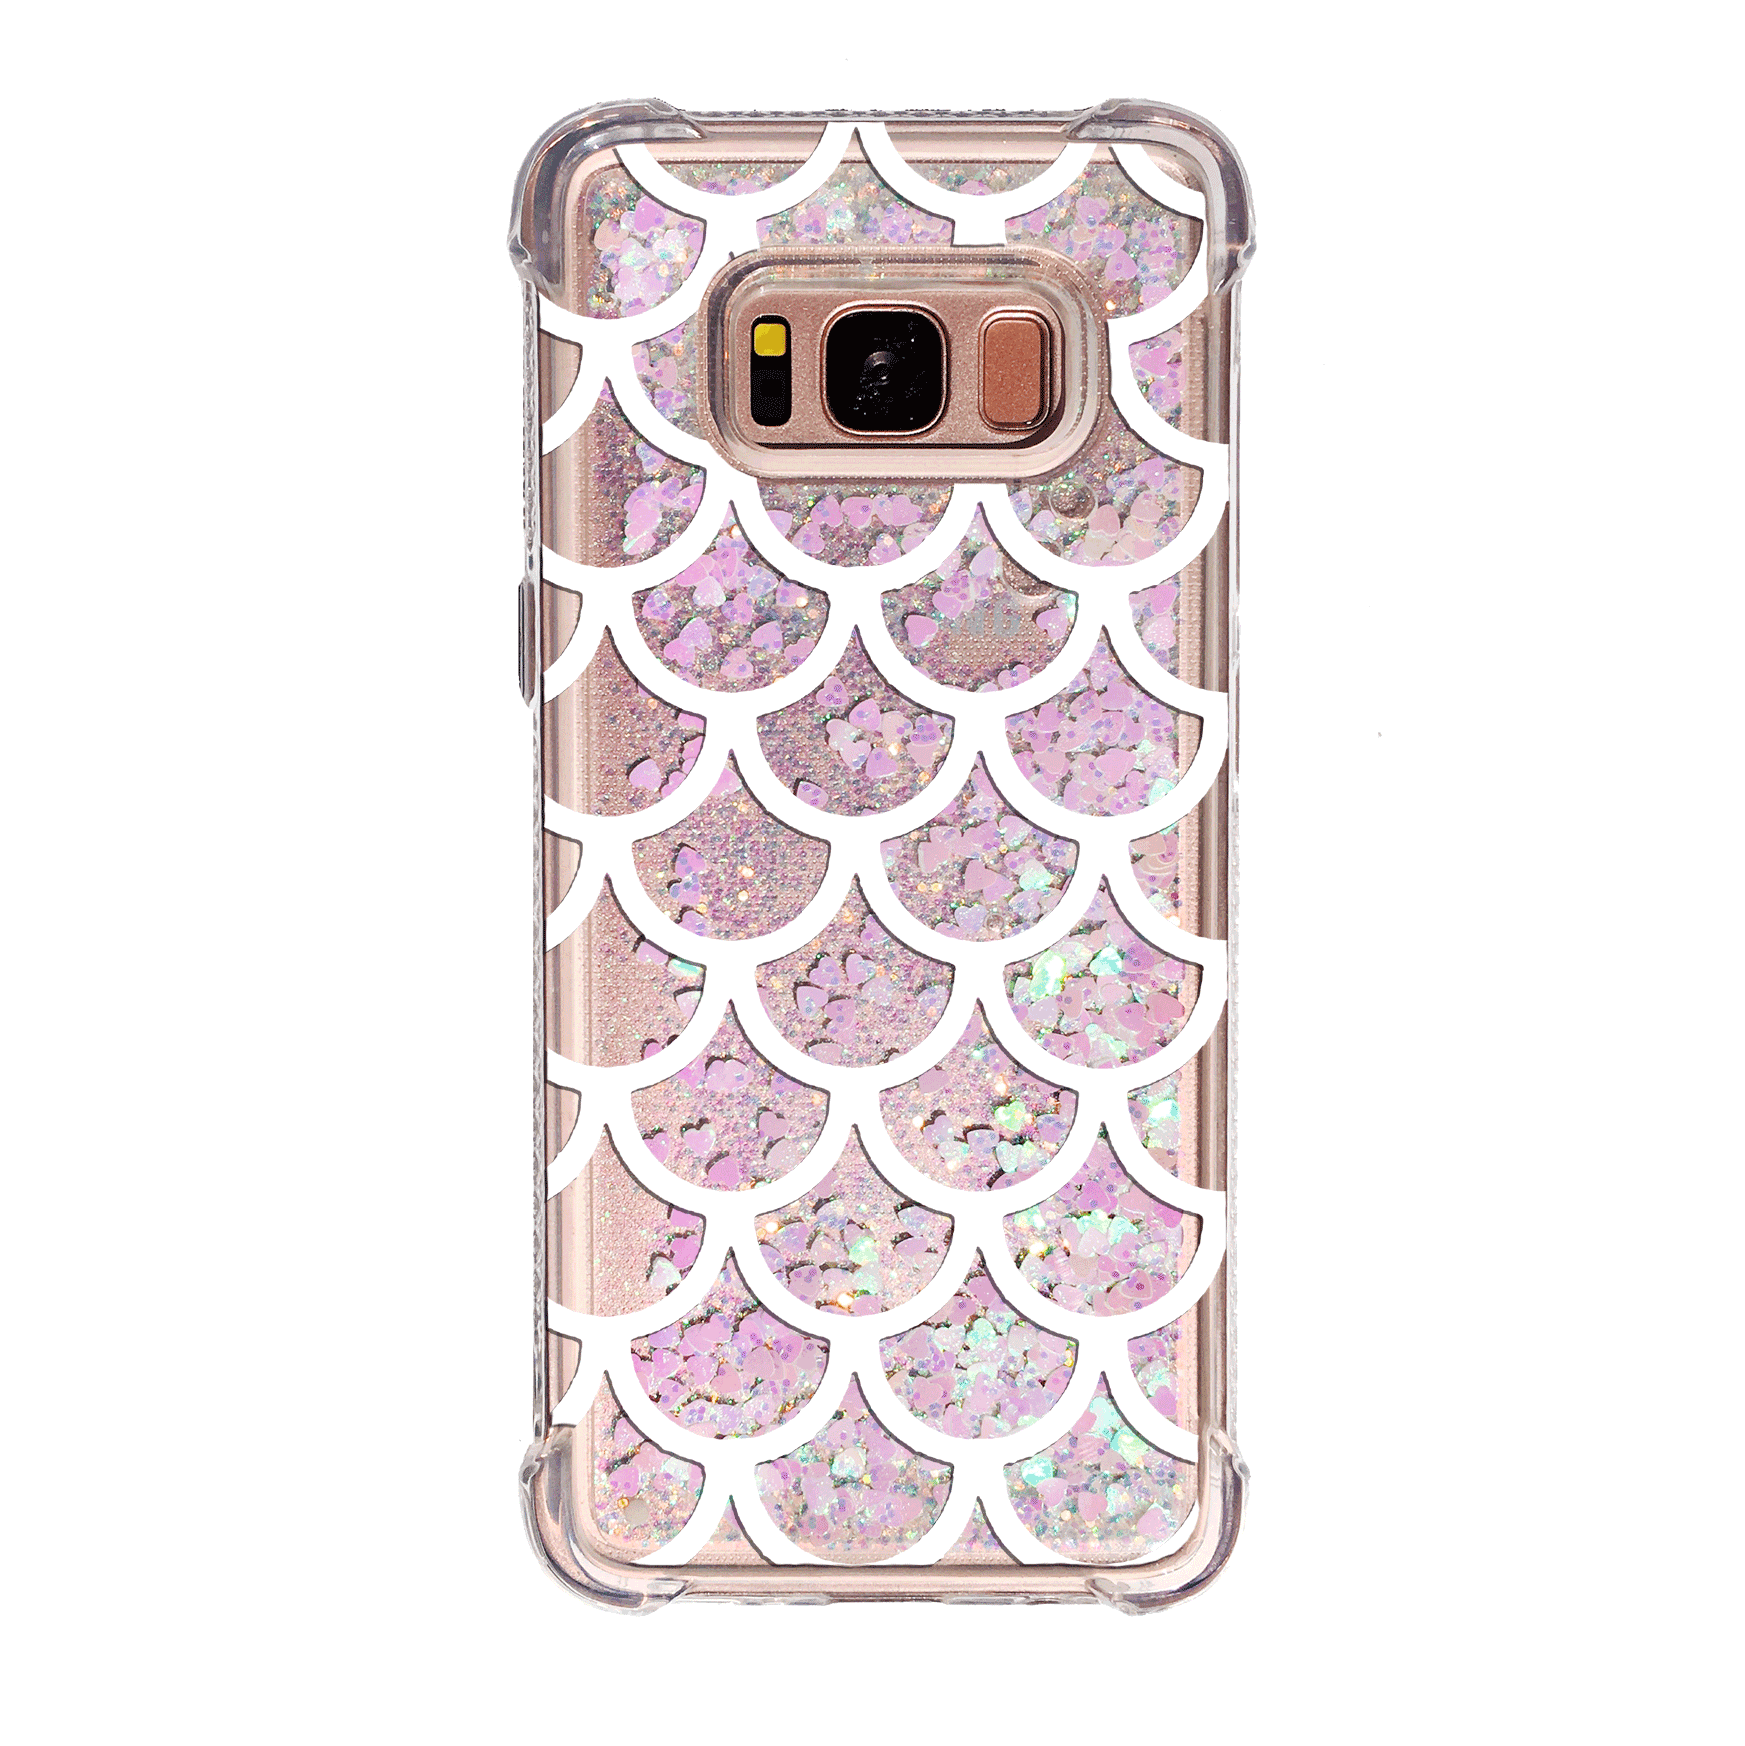 Mermaid Scales Pink Glitter Galaxy Phone Case